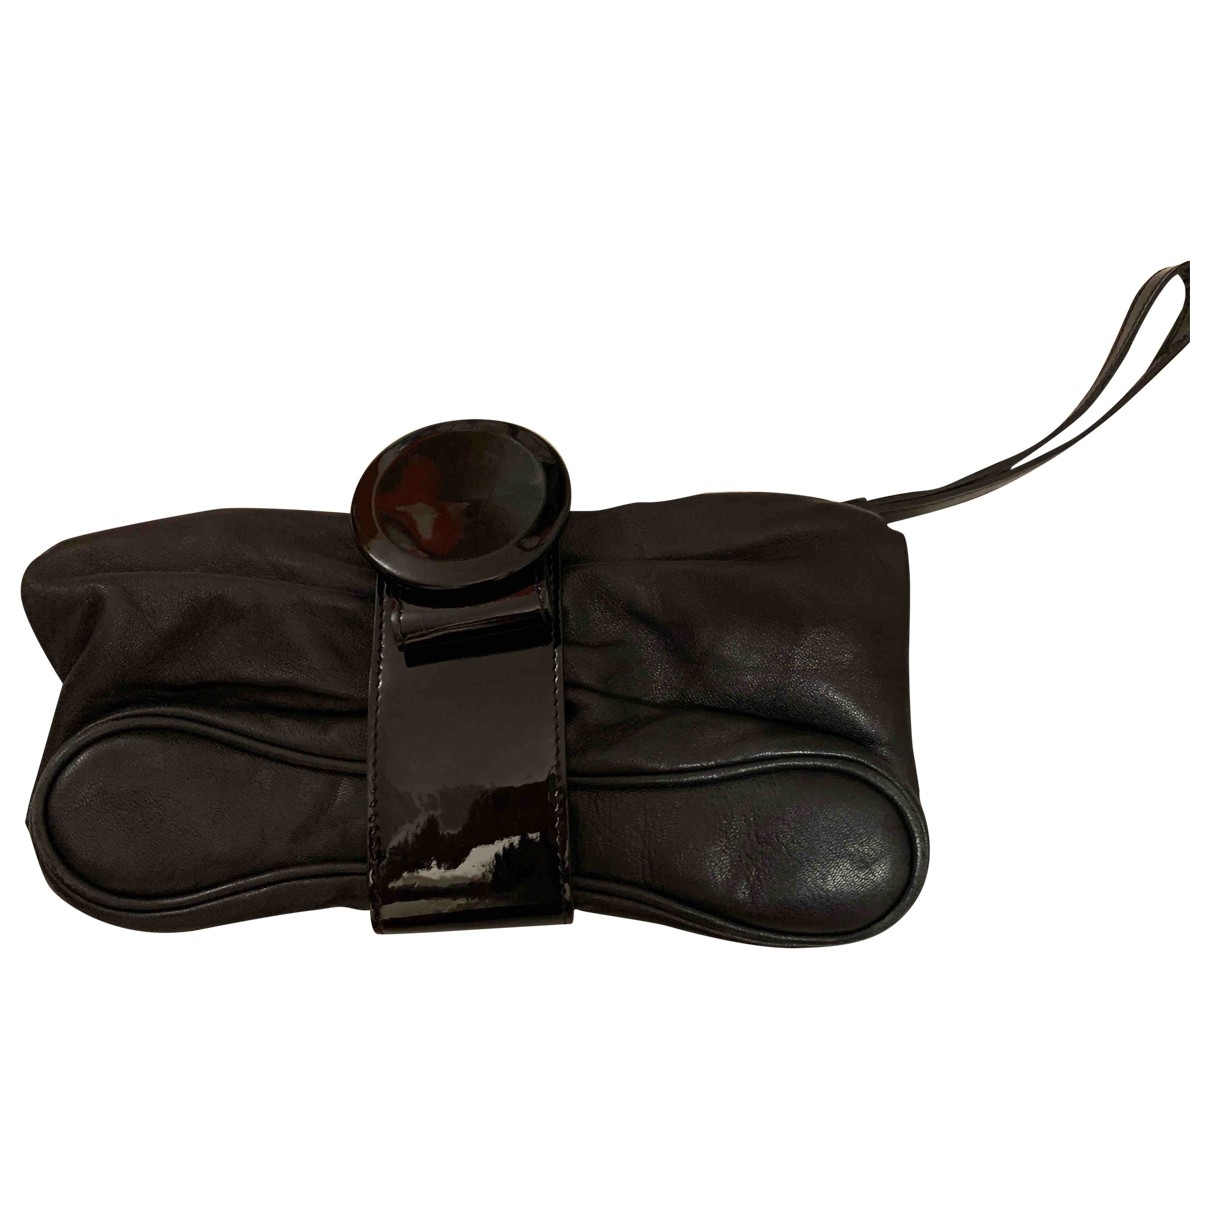 Giorgio Armani \N Black Leather Clutch bag for Women \N